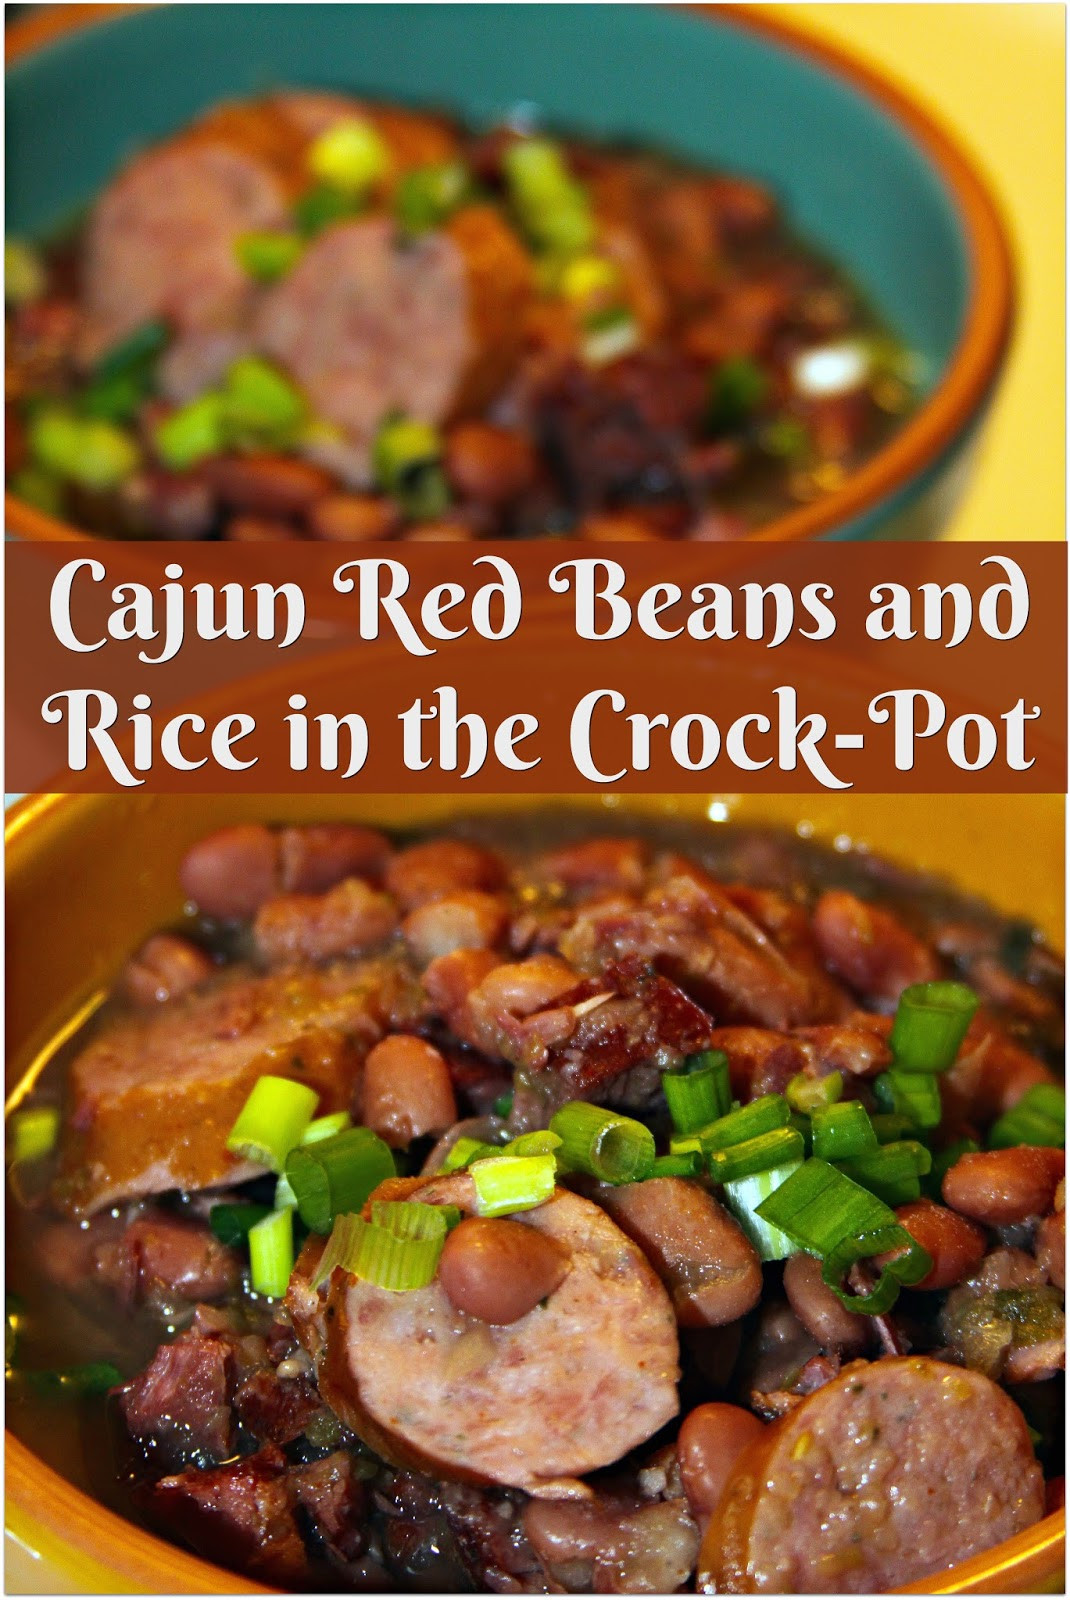 Cajun Red Beans And Rice  For the Love of Food Cajun Red Beans and Rice in the